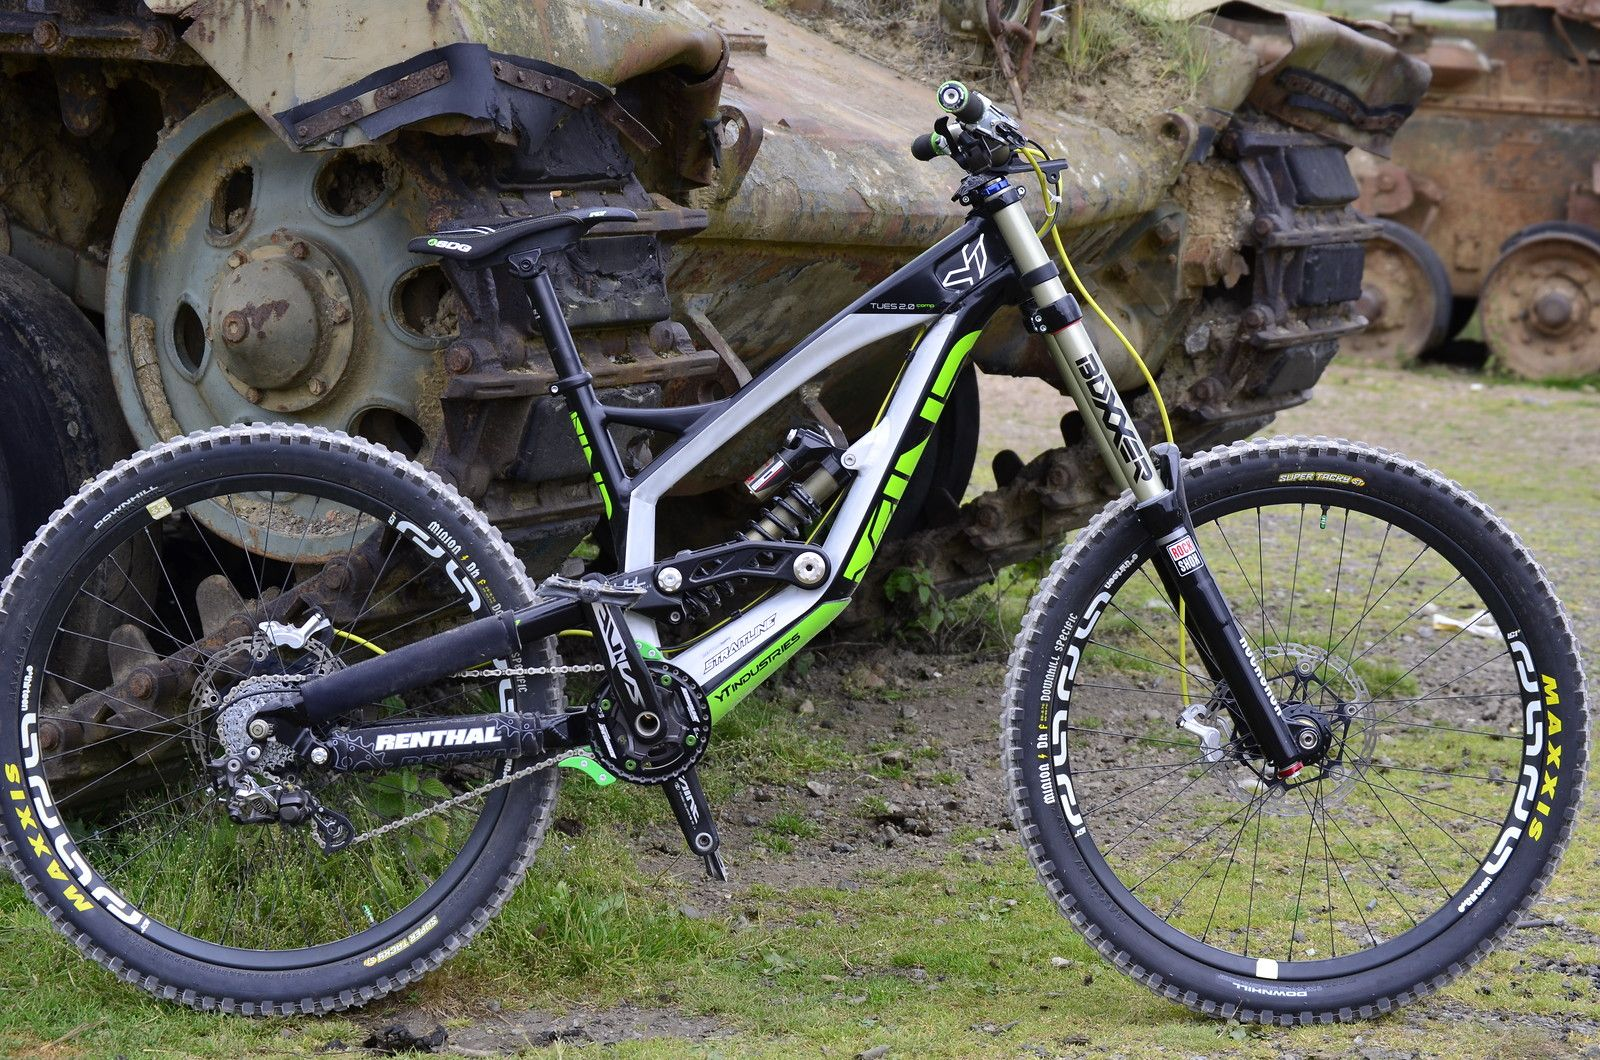 Yt Industries Tues 2 0 Bikes Pinterest Mtb And Bicycling